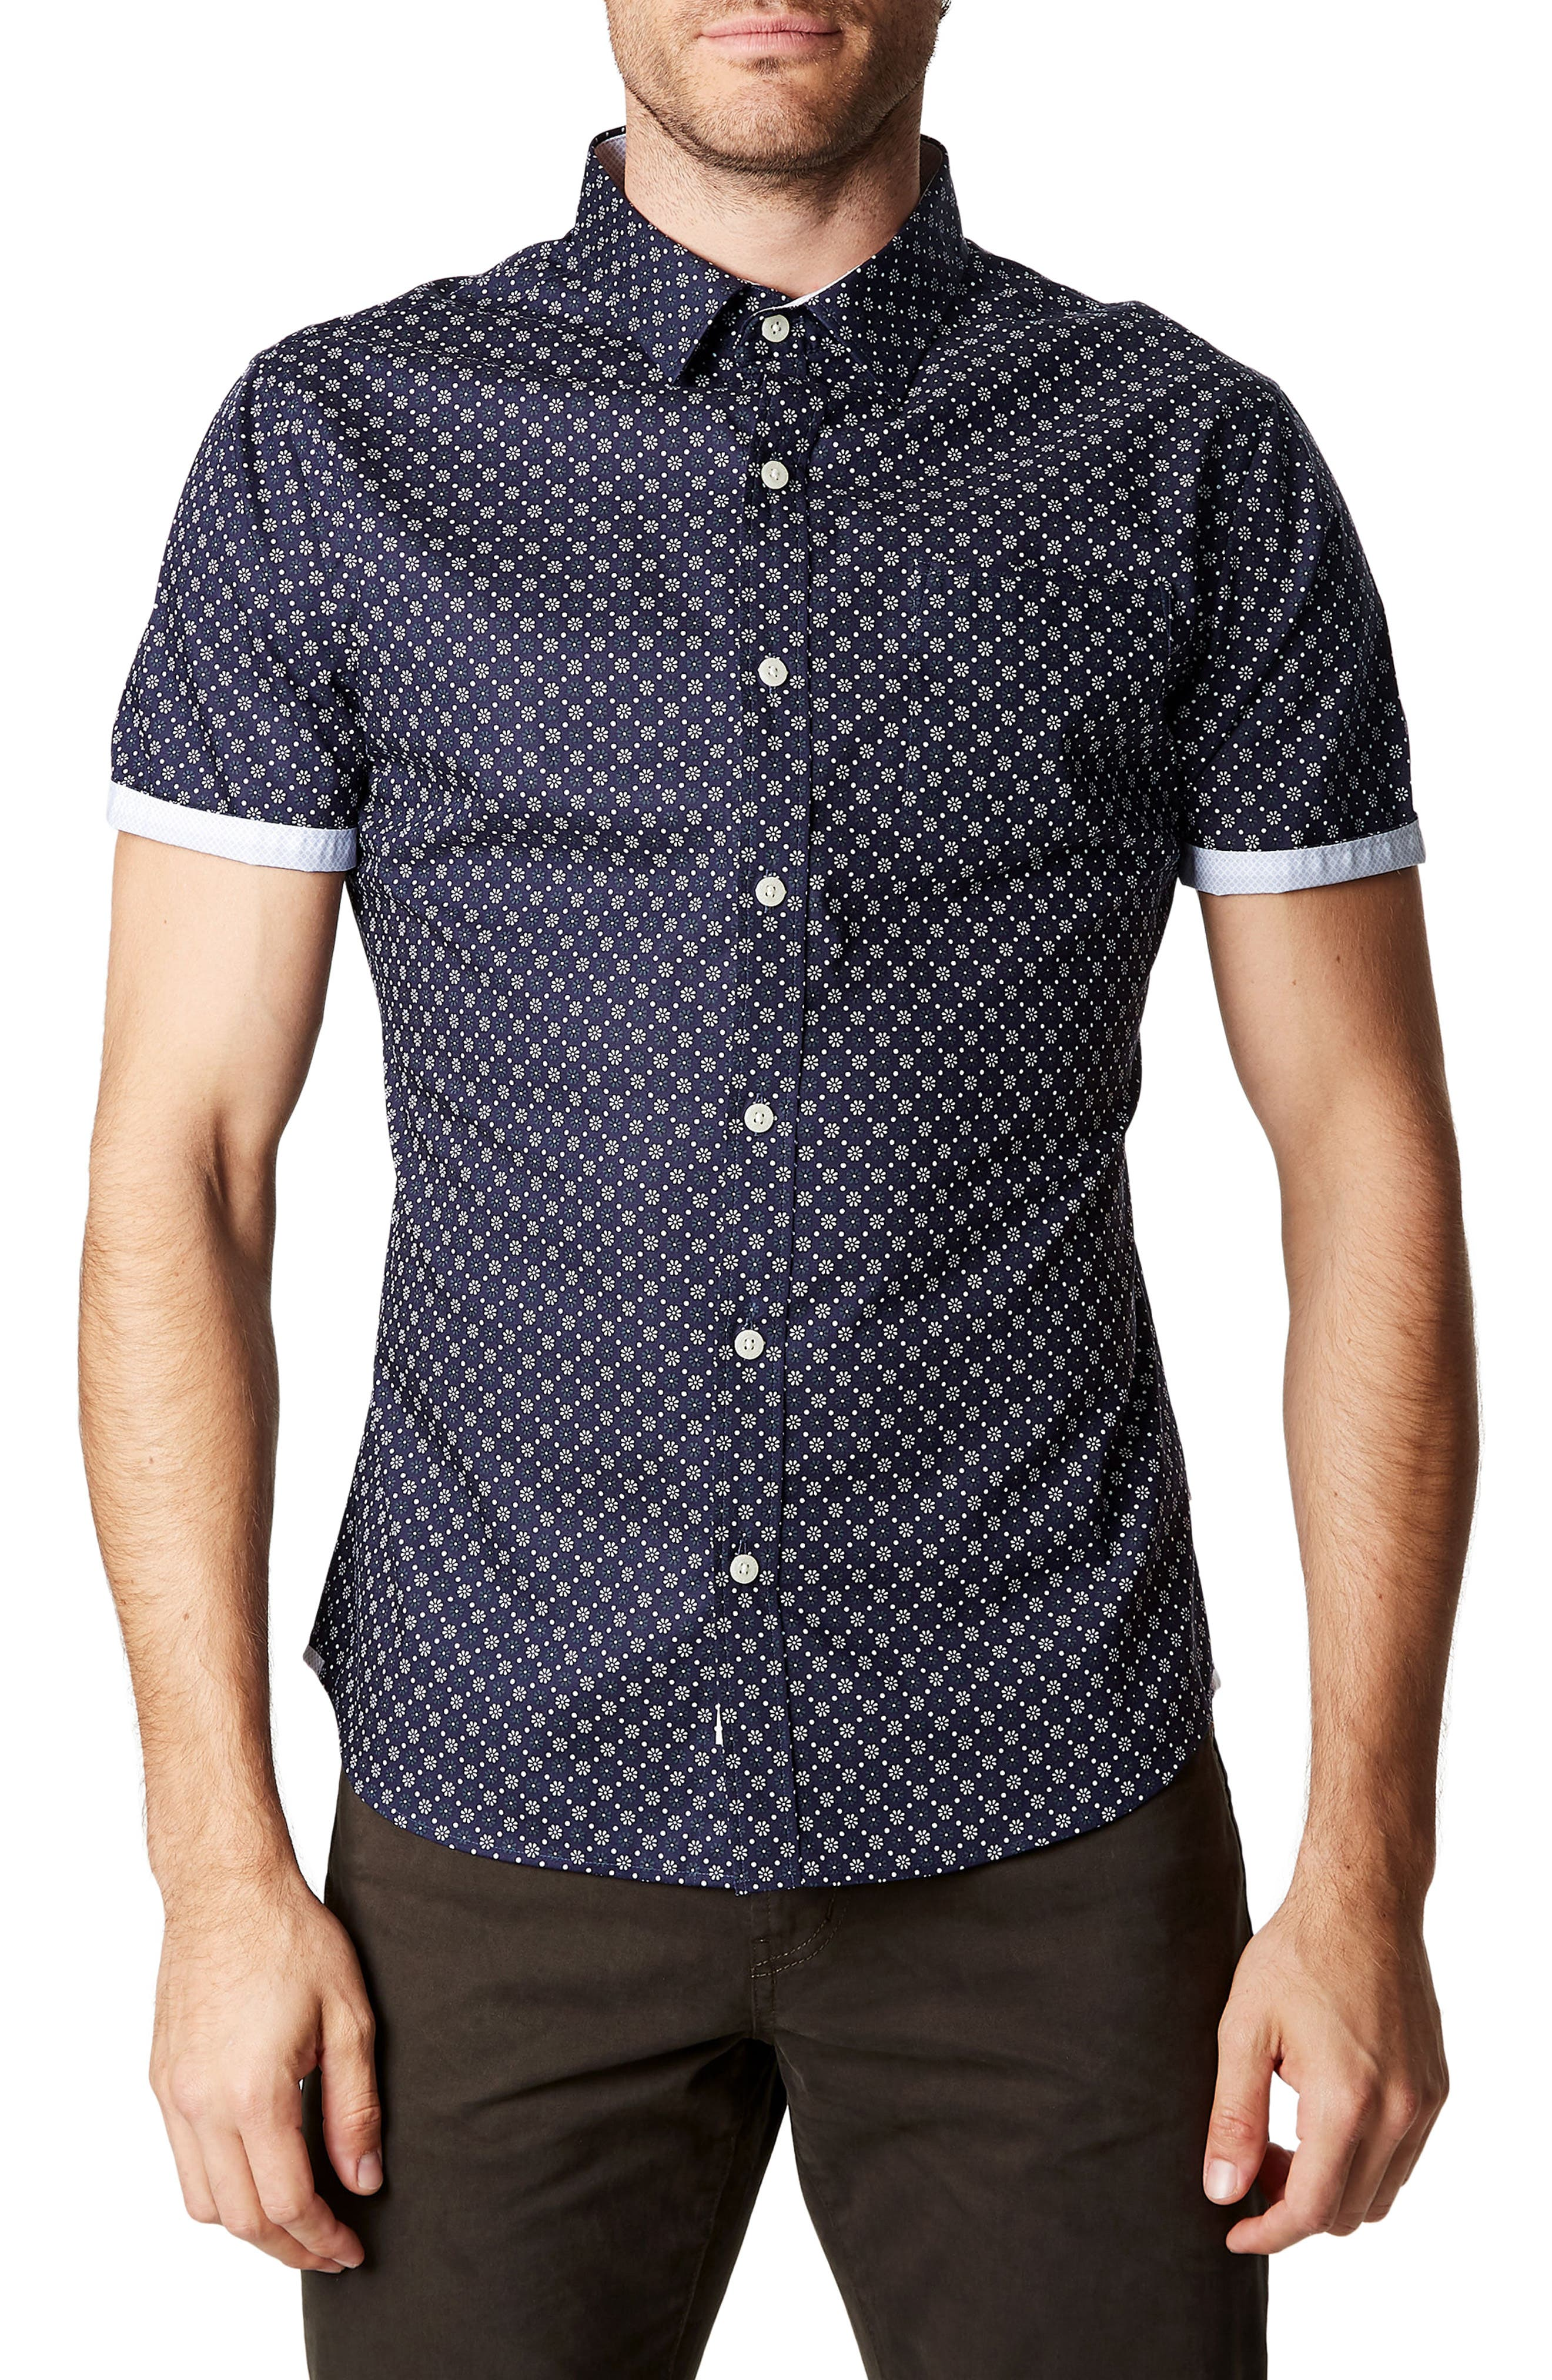 Hold It Down Woven Shirt,                         Main,                         color, 410